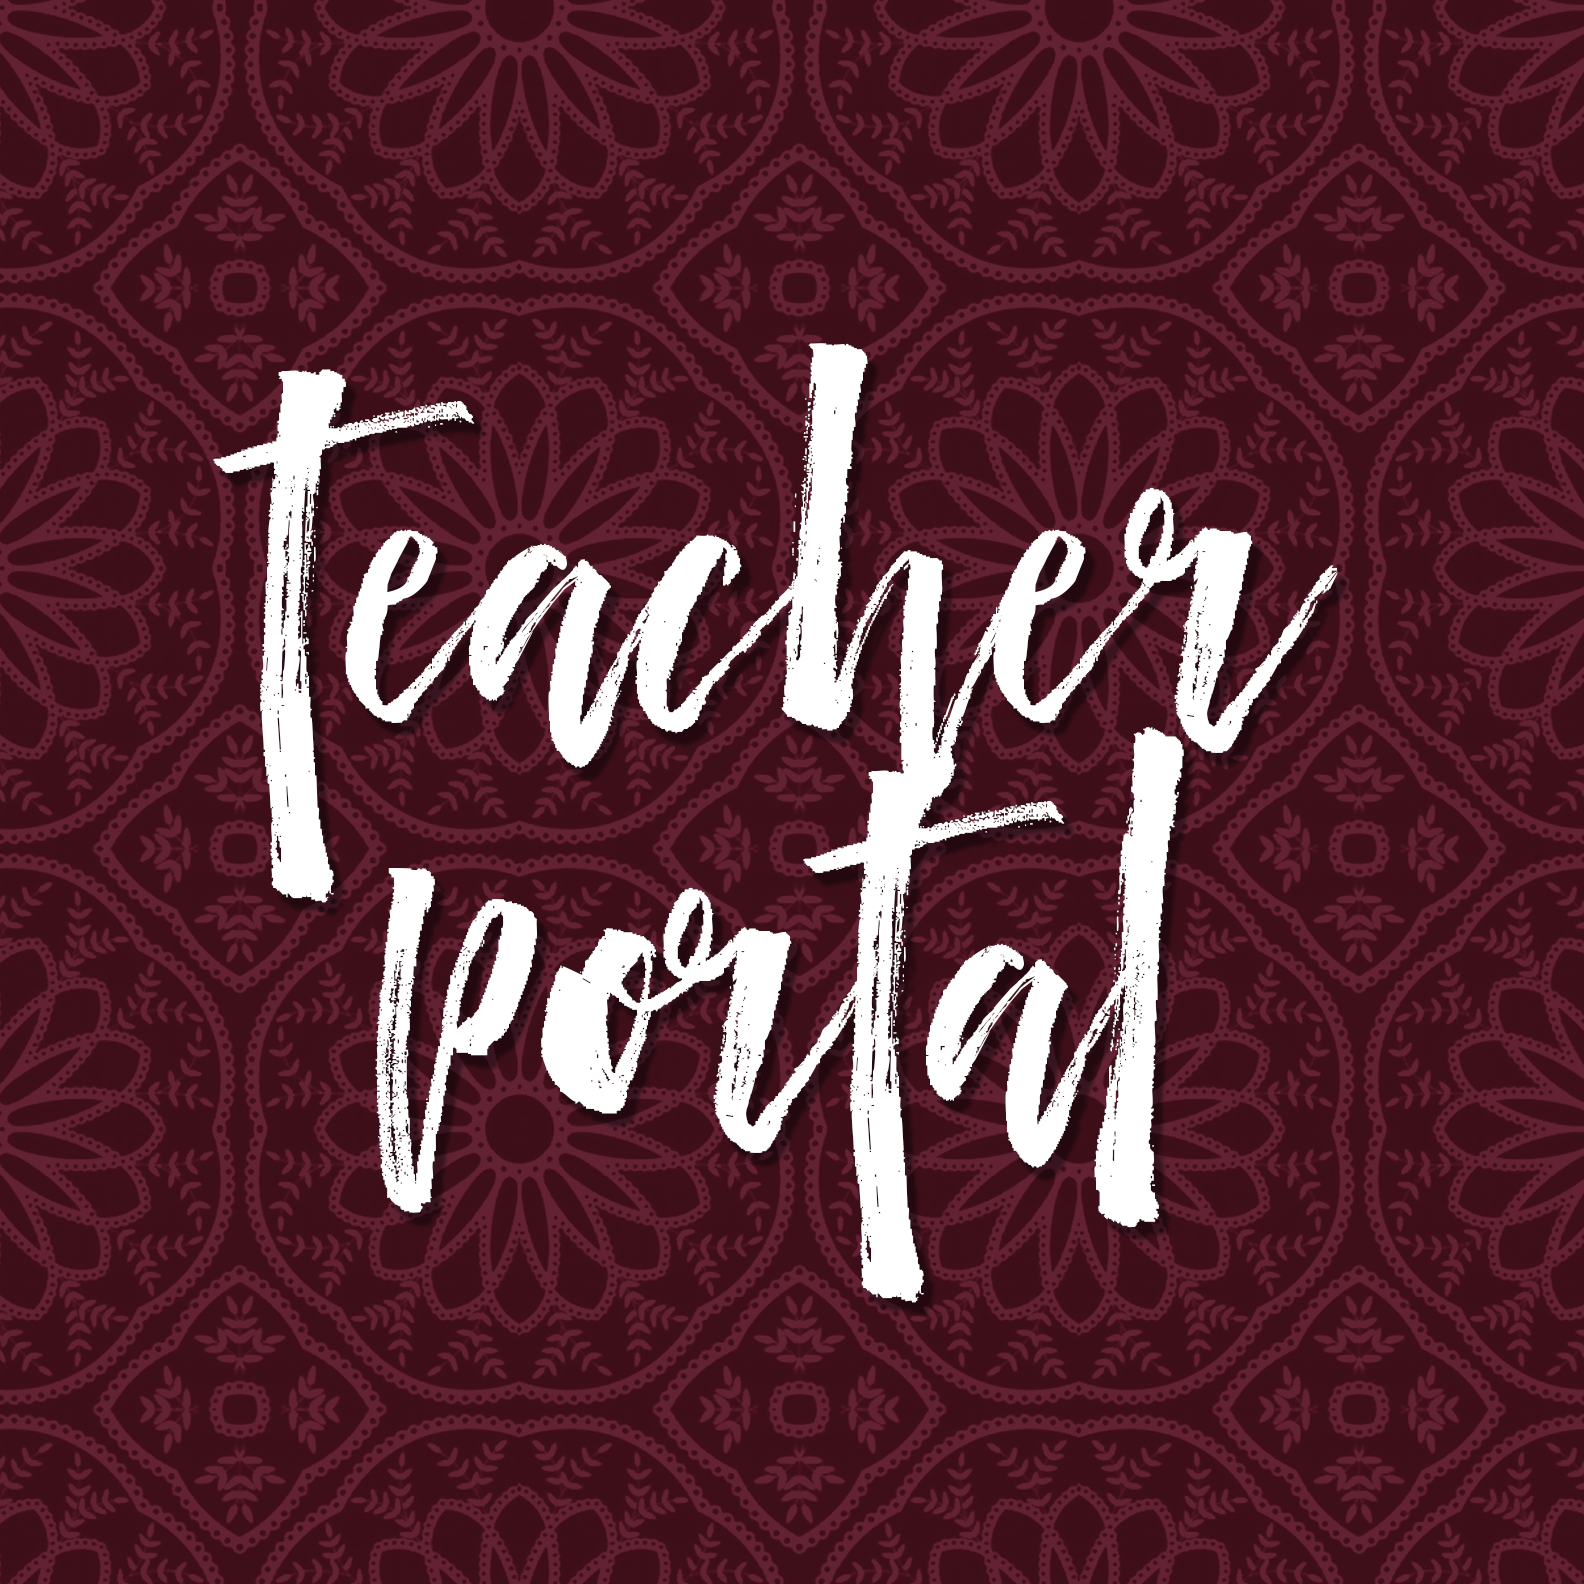 POLE TEACHER PORTAL